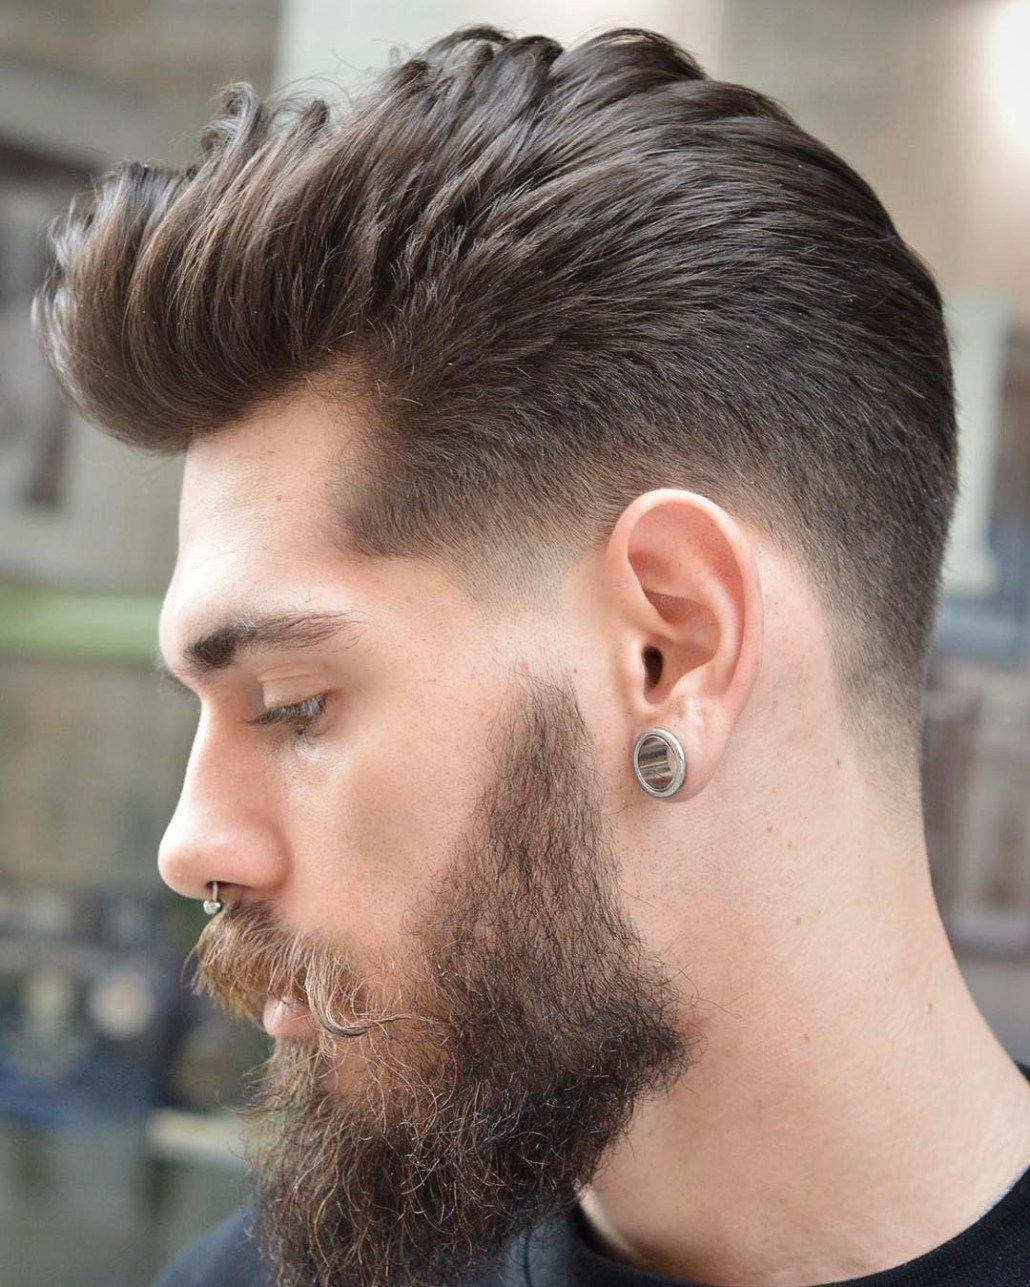 20 Types Of Fade Haircuts That Are Trendy Now Fade Haircut